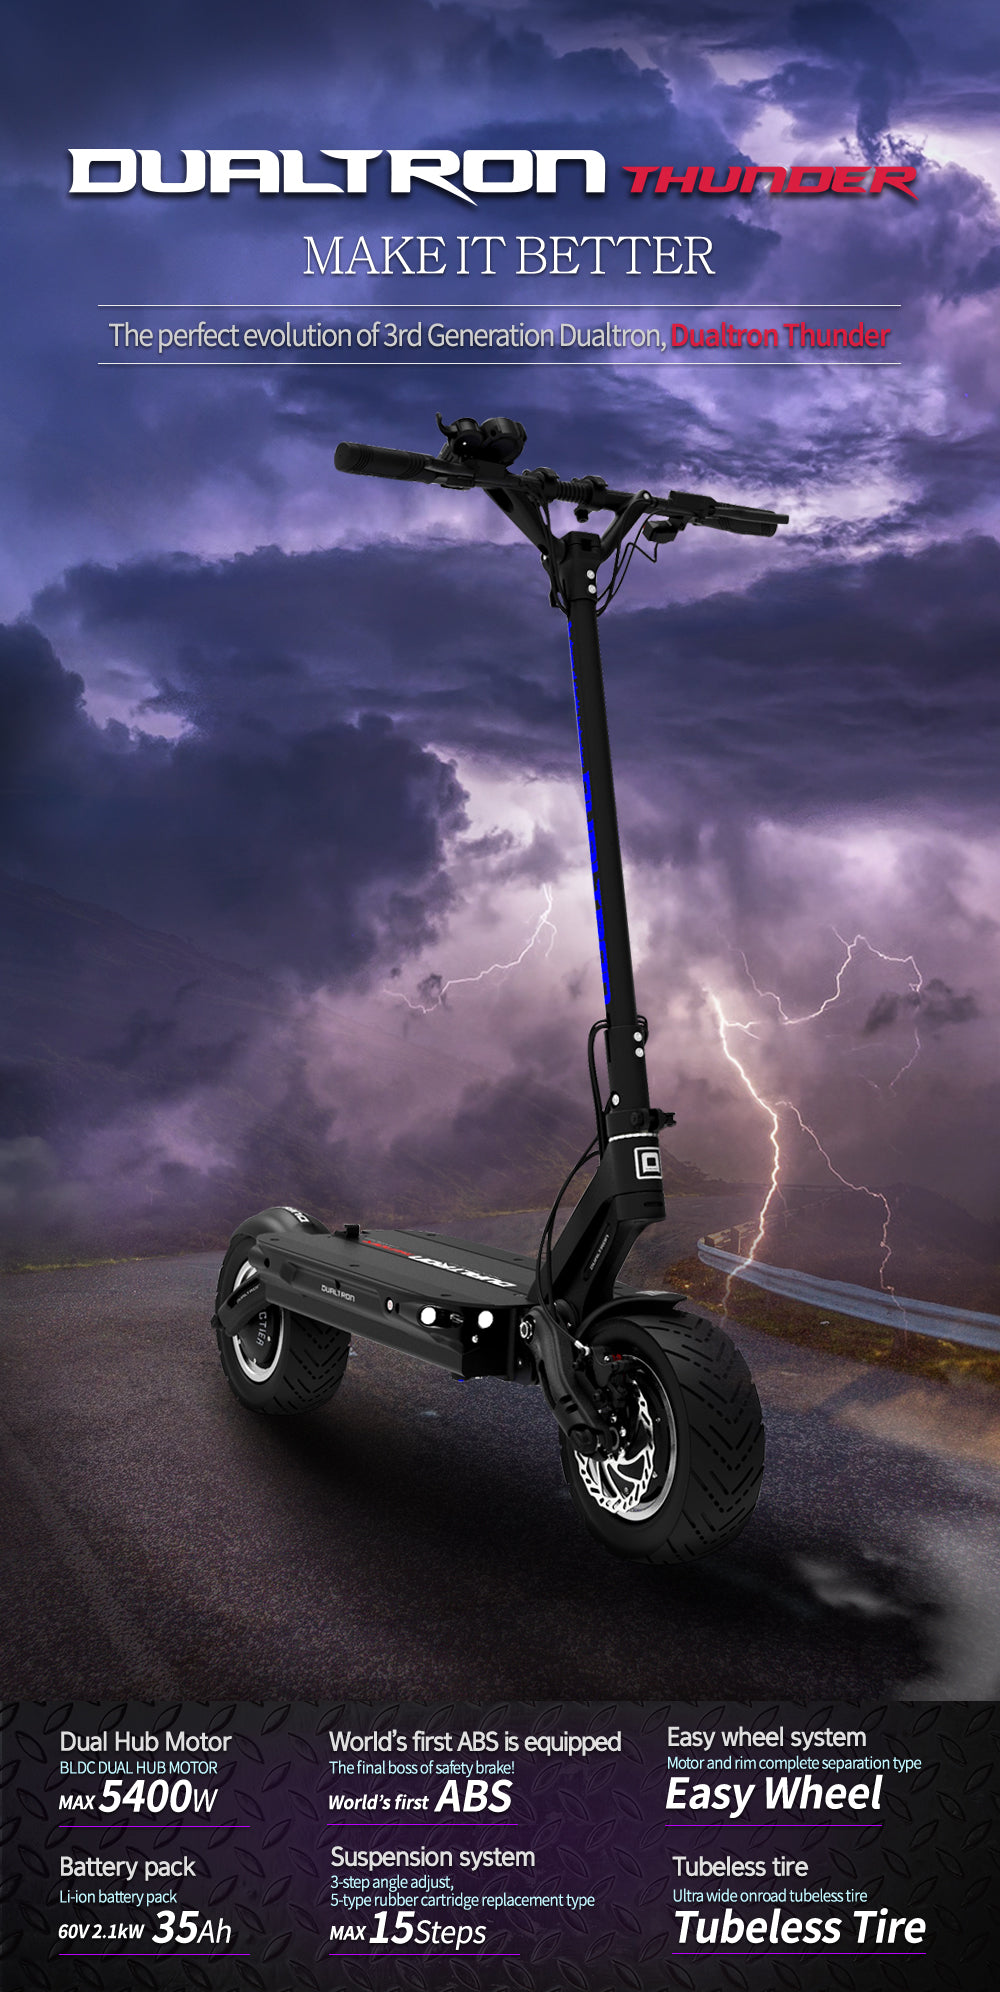 Dualtron Thunder electric scooter specs